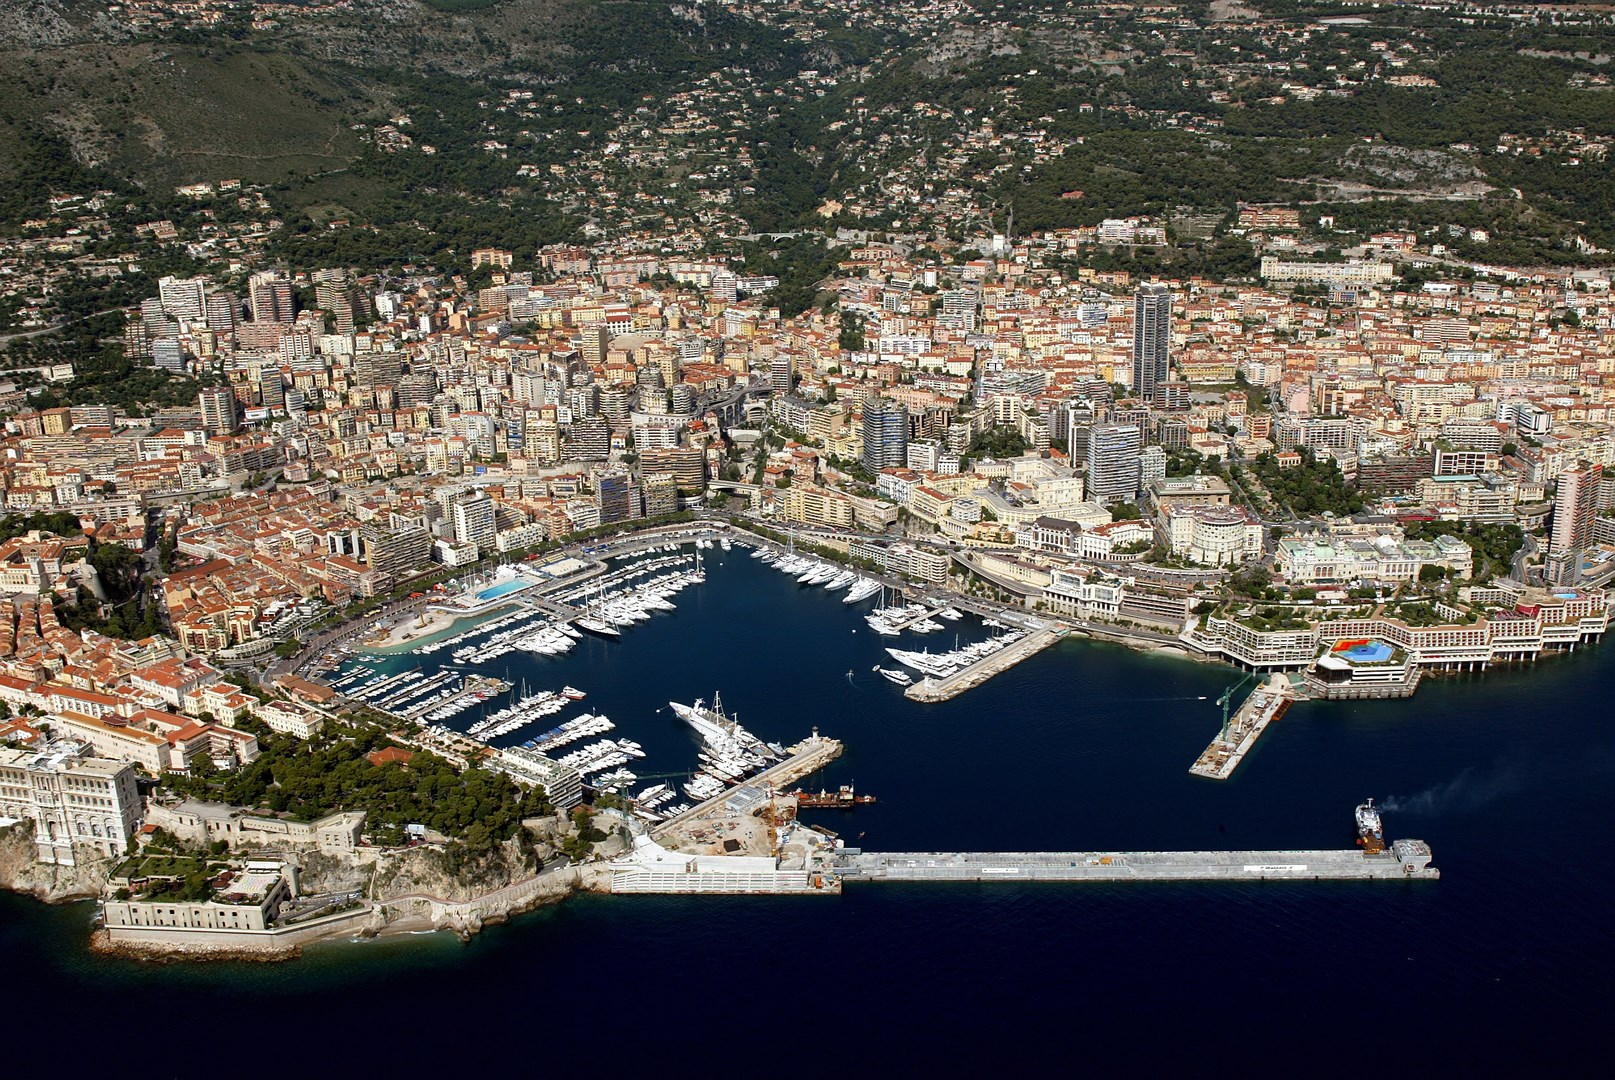 Aerial view of the Monaco floating dock